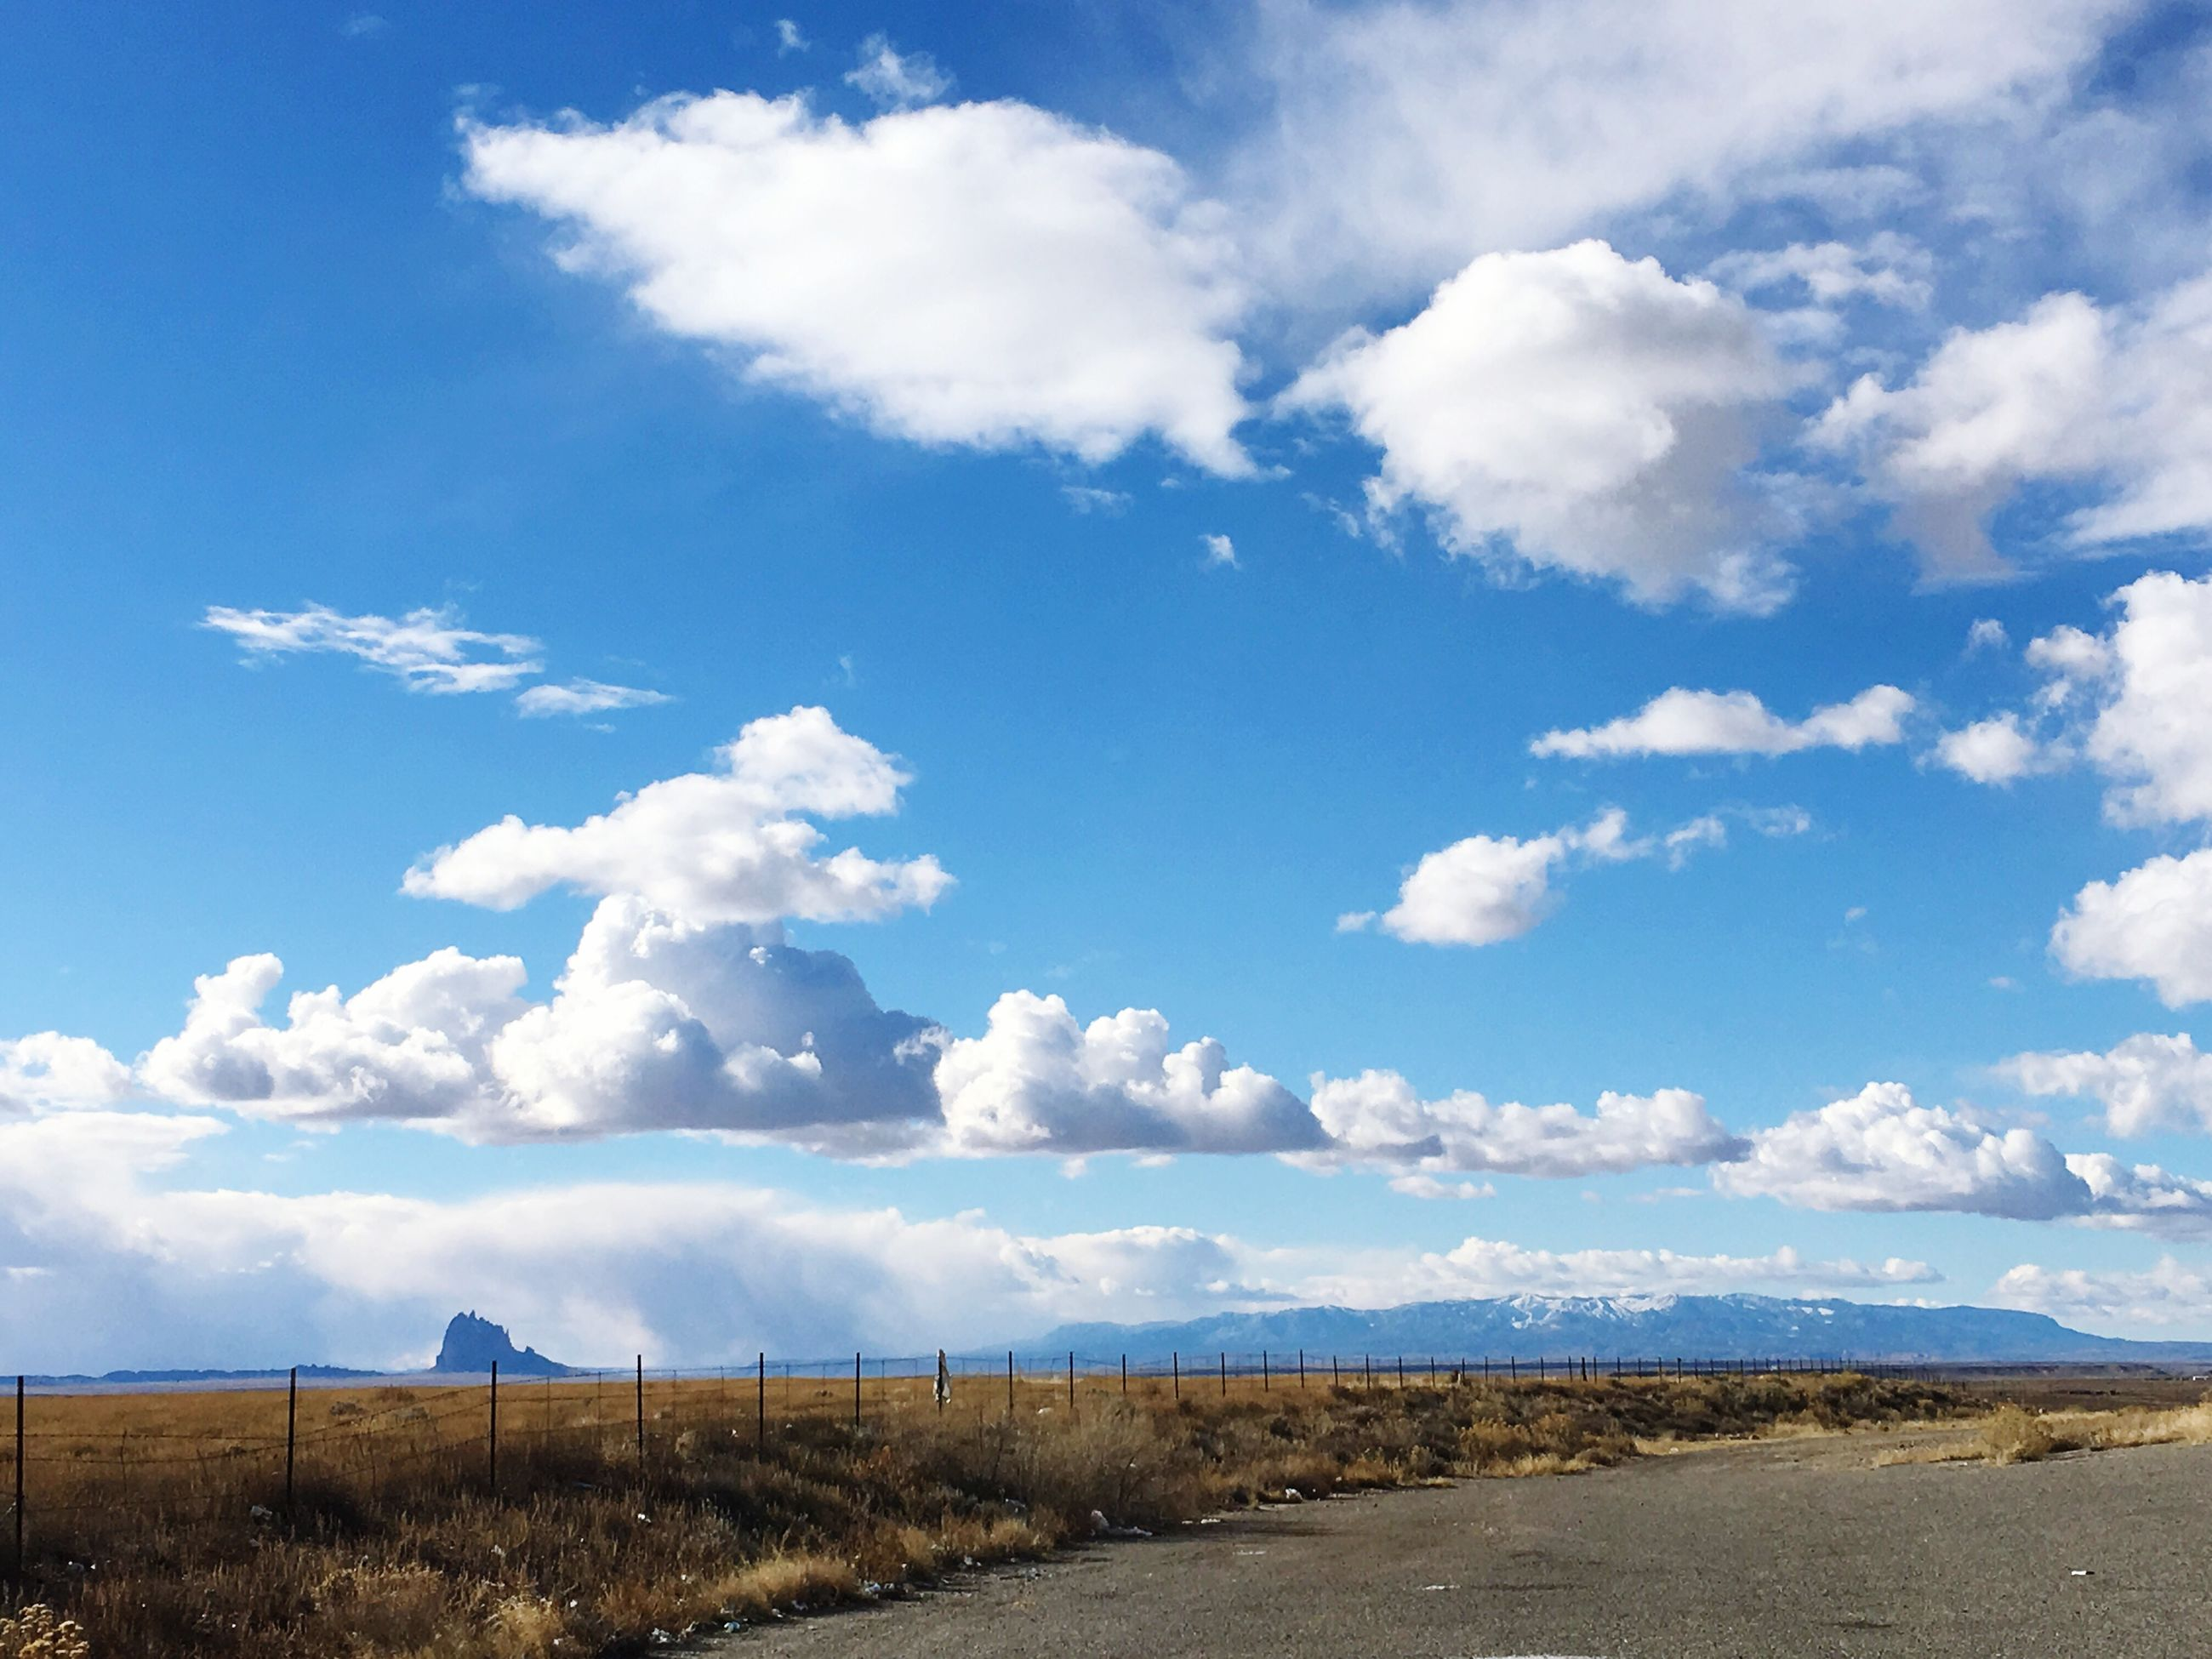 sky, tranquil scene, tranquility, landscape, blue, cloud - sky, scenics, field, cloud, nature, beauty in nature, grass, road, cloudy, day, horizon over land, non-urban scene, water, remote, outdoors